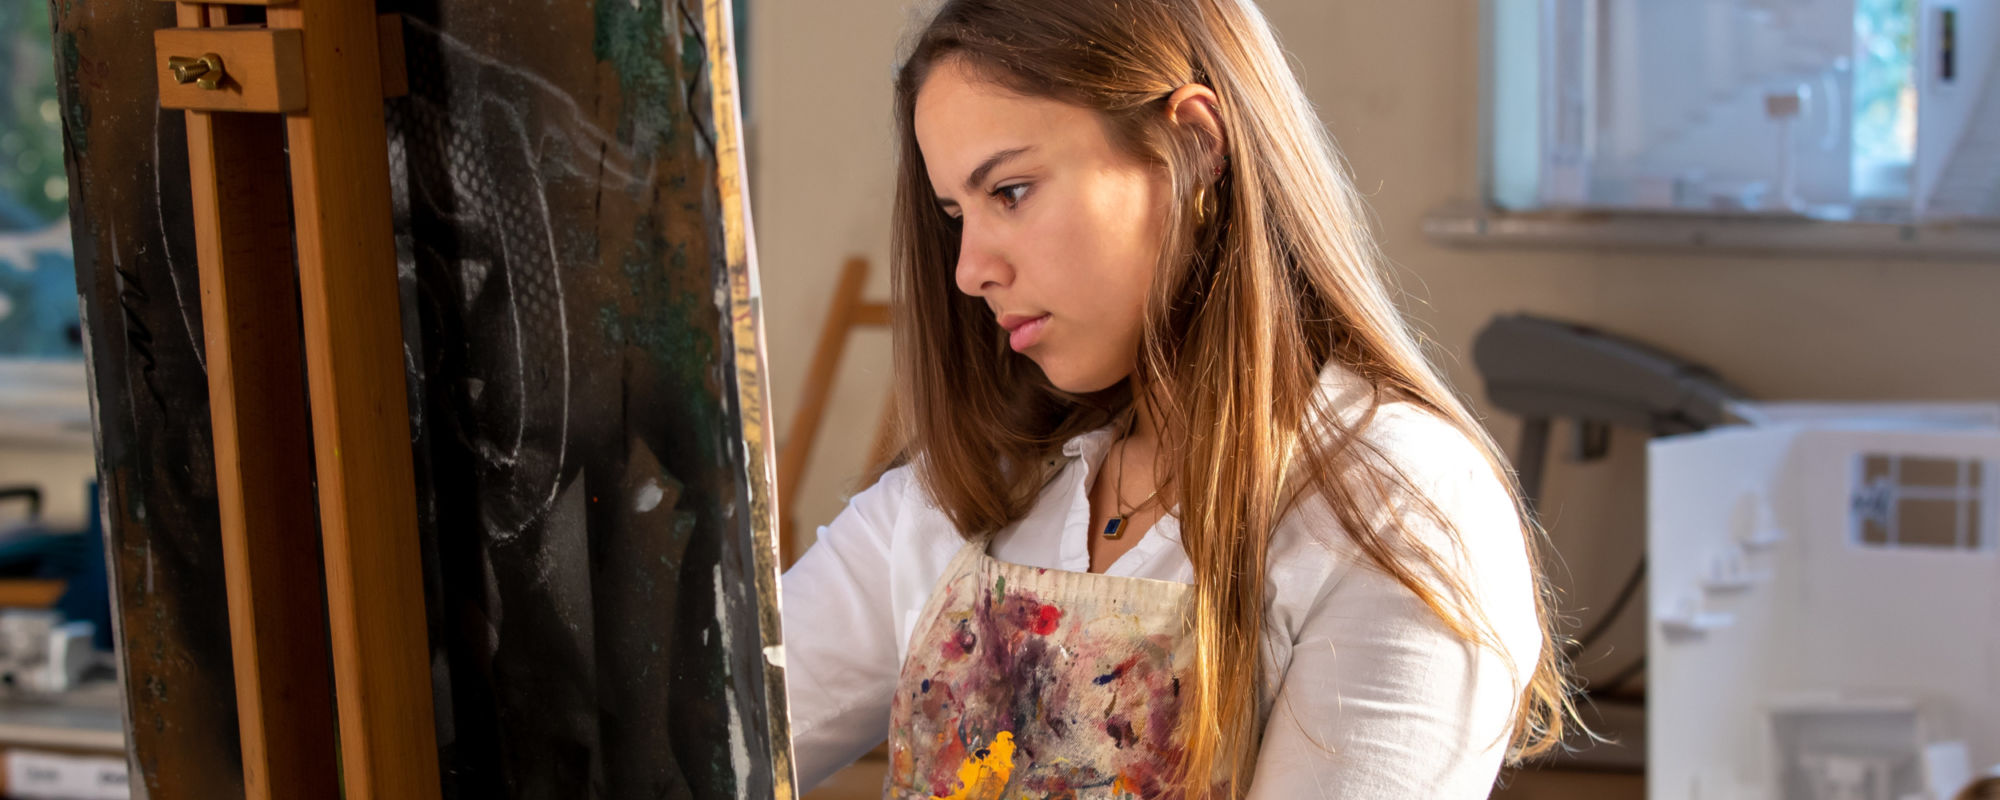 Wycliffe College student painting a piece of art